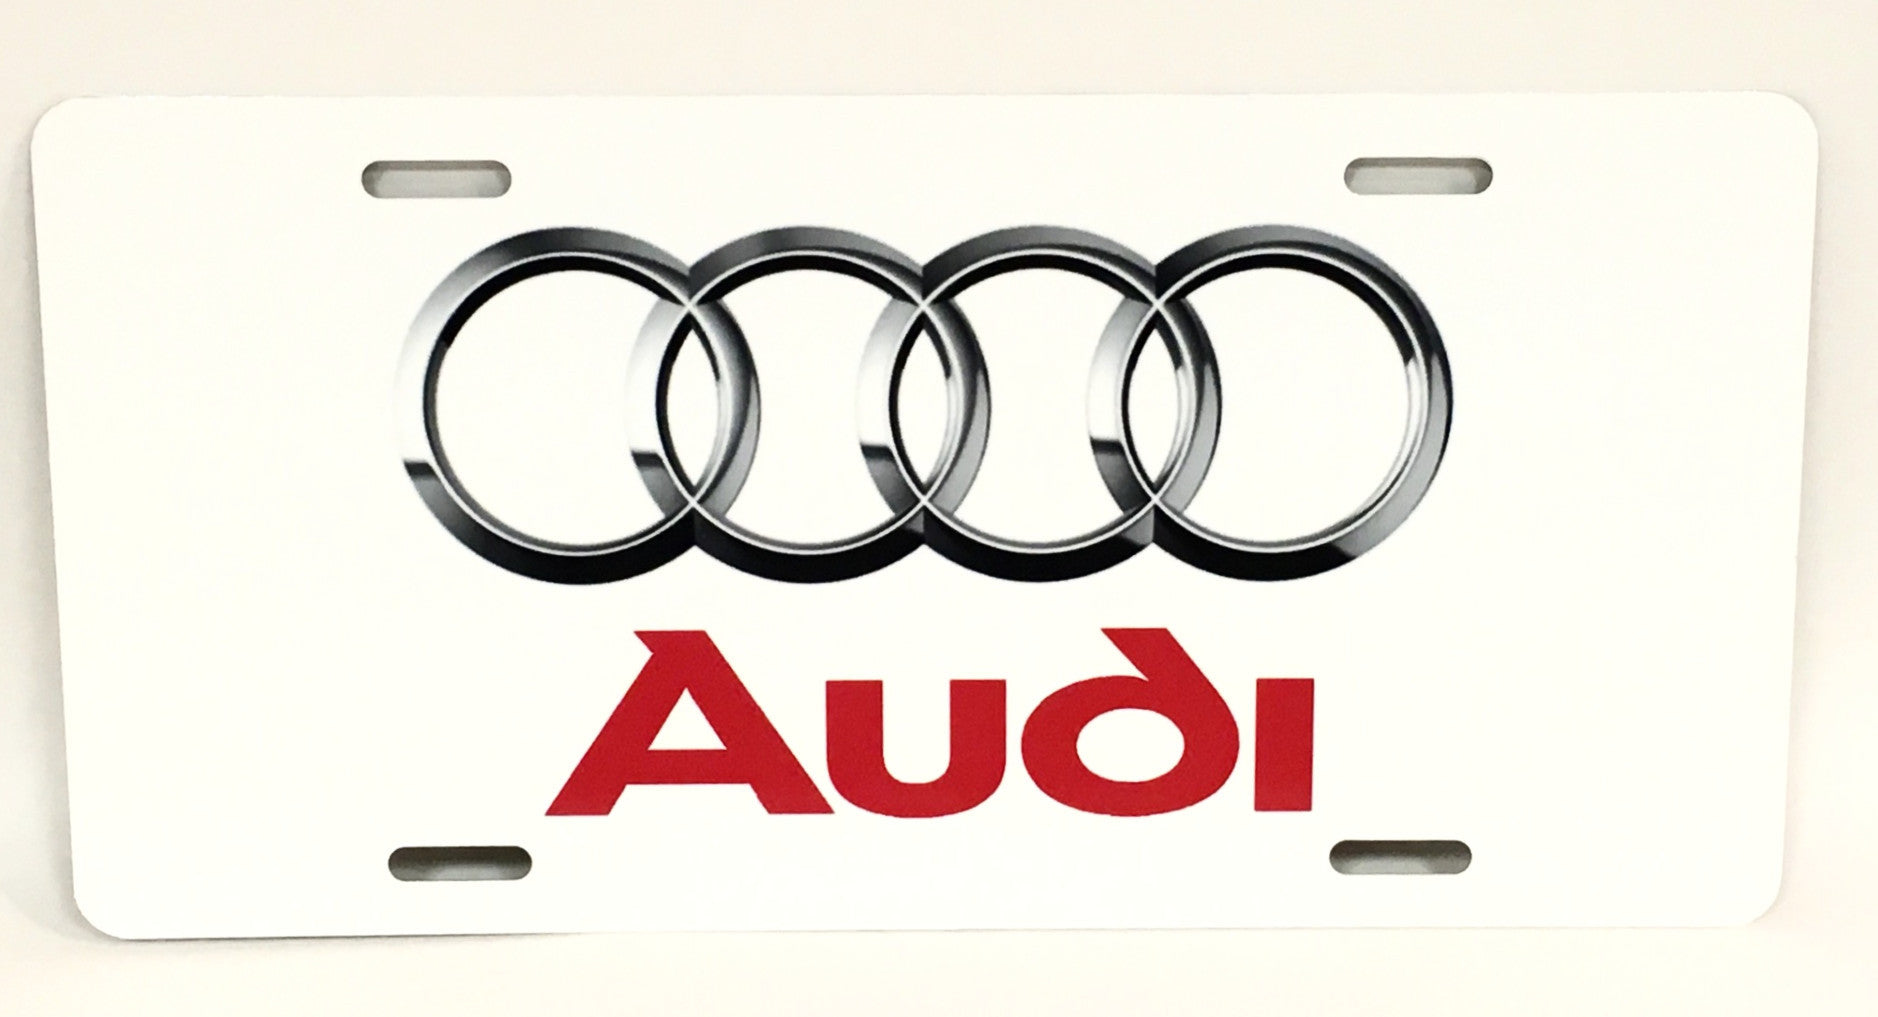 Audi Rings White License Plate